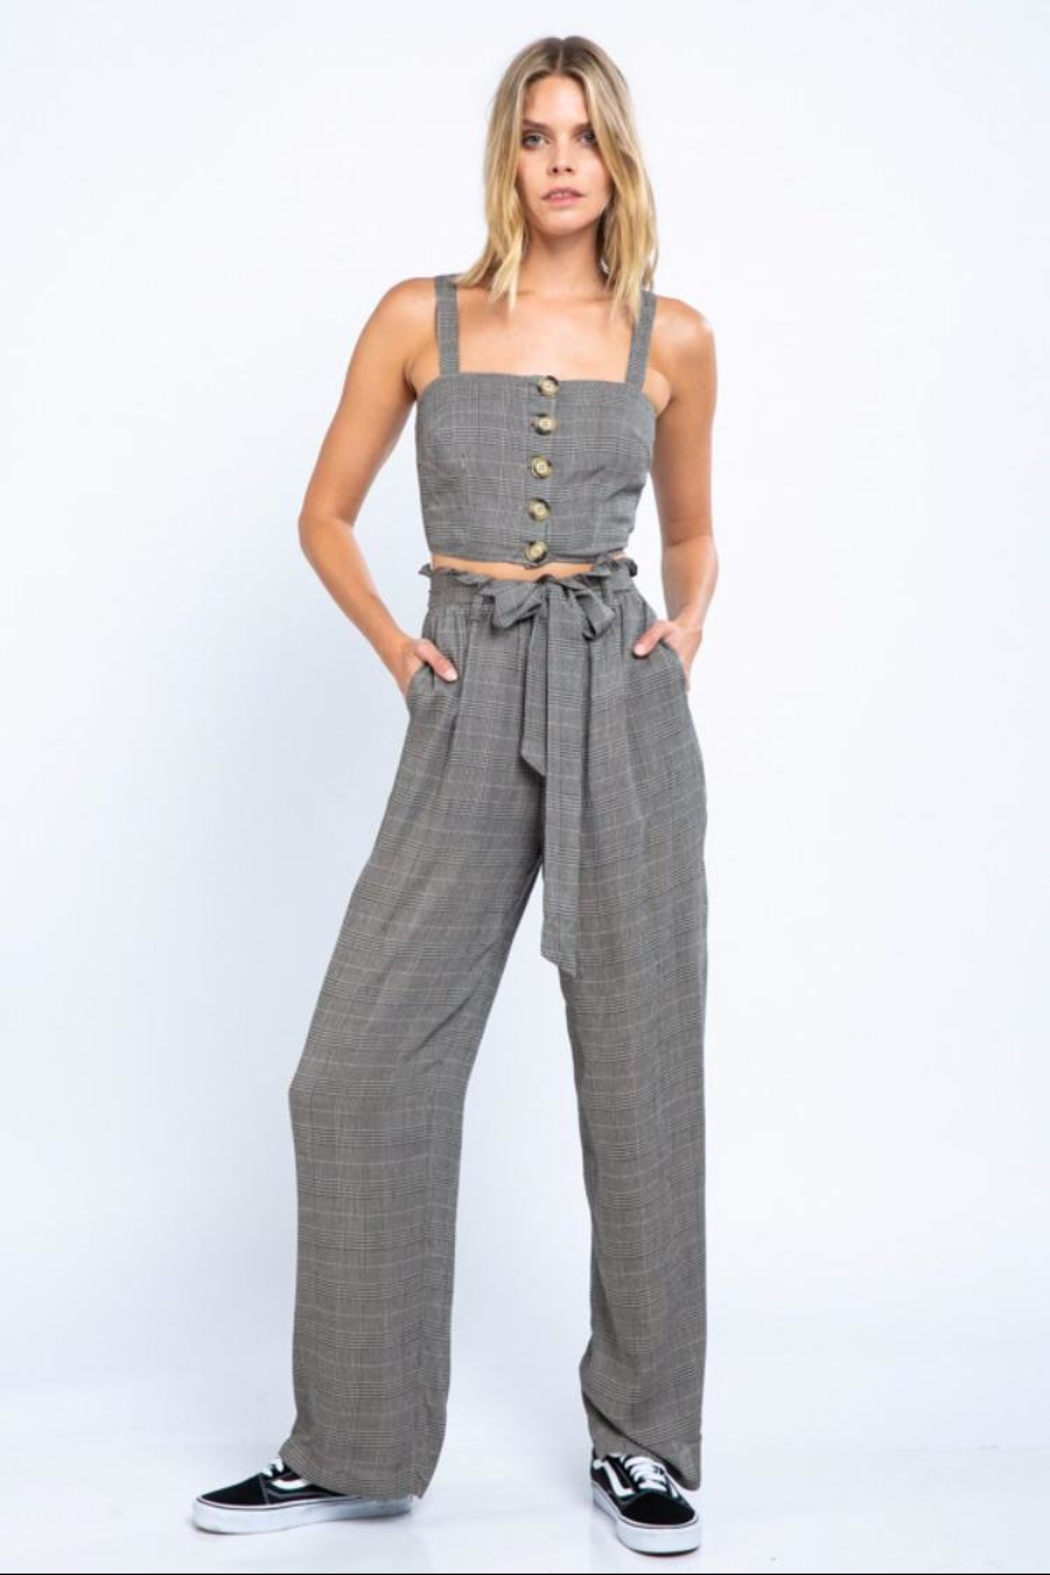 skylar madison Glen-Plaid Pant Set - Main Image